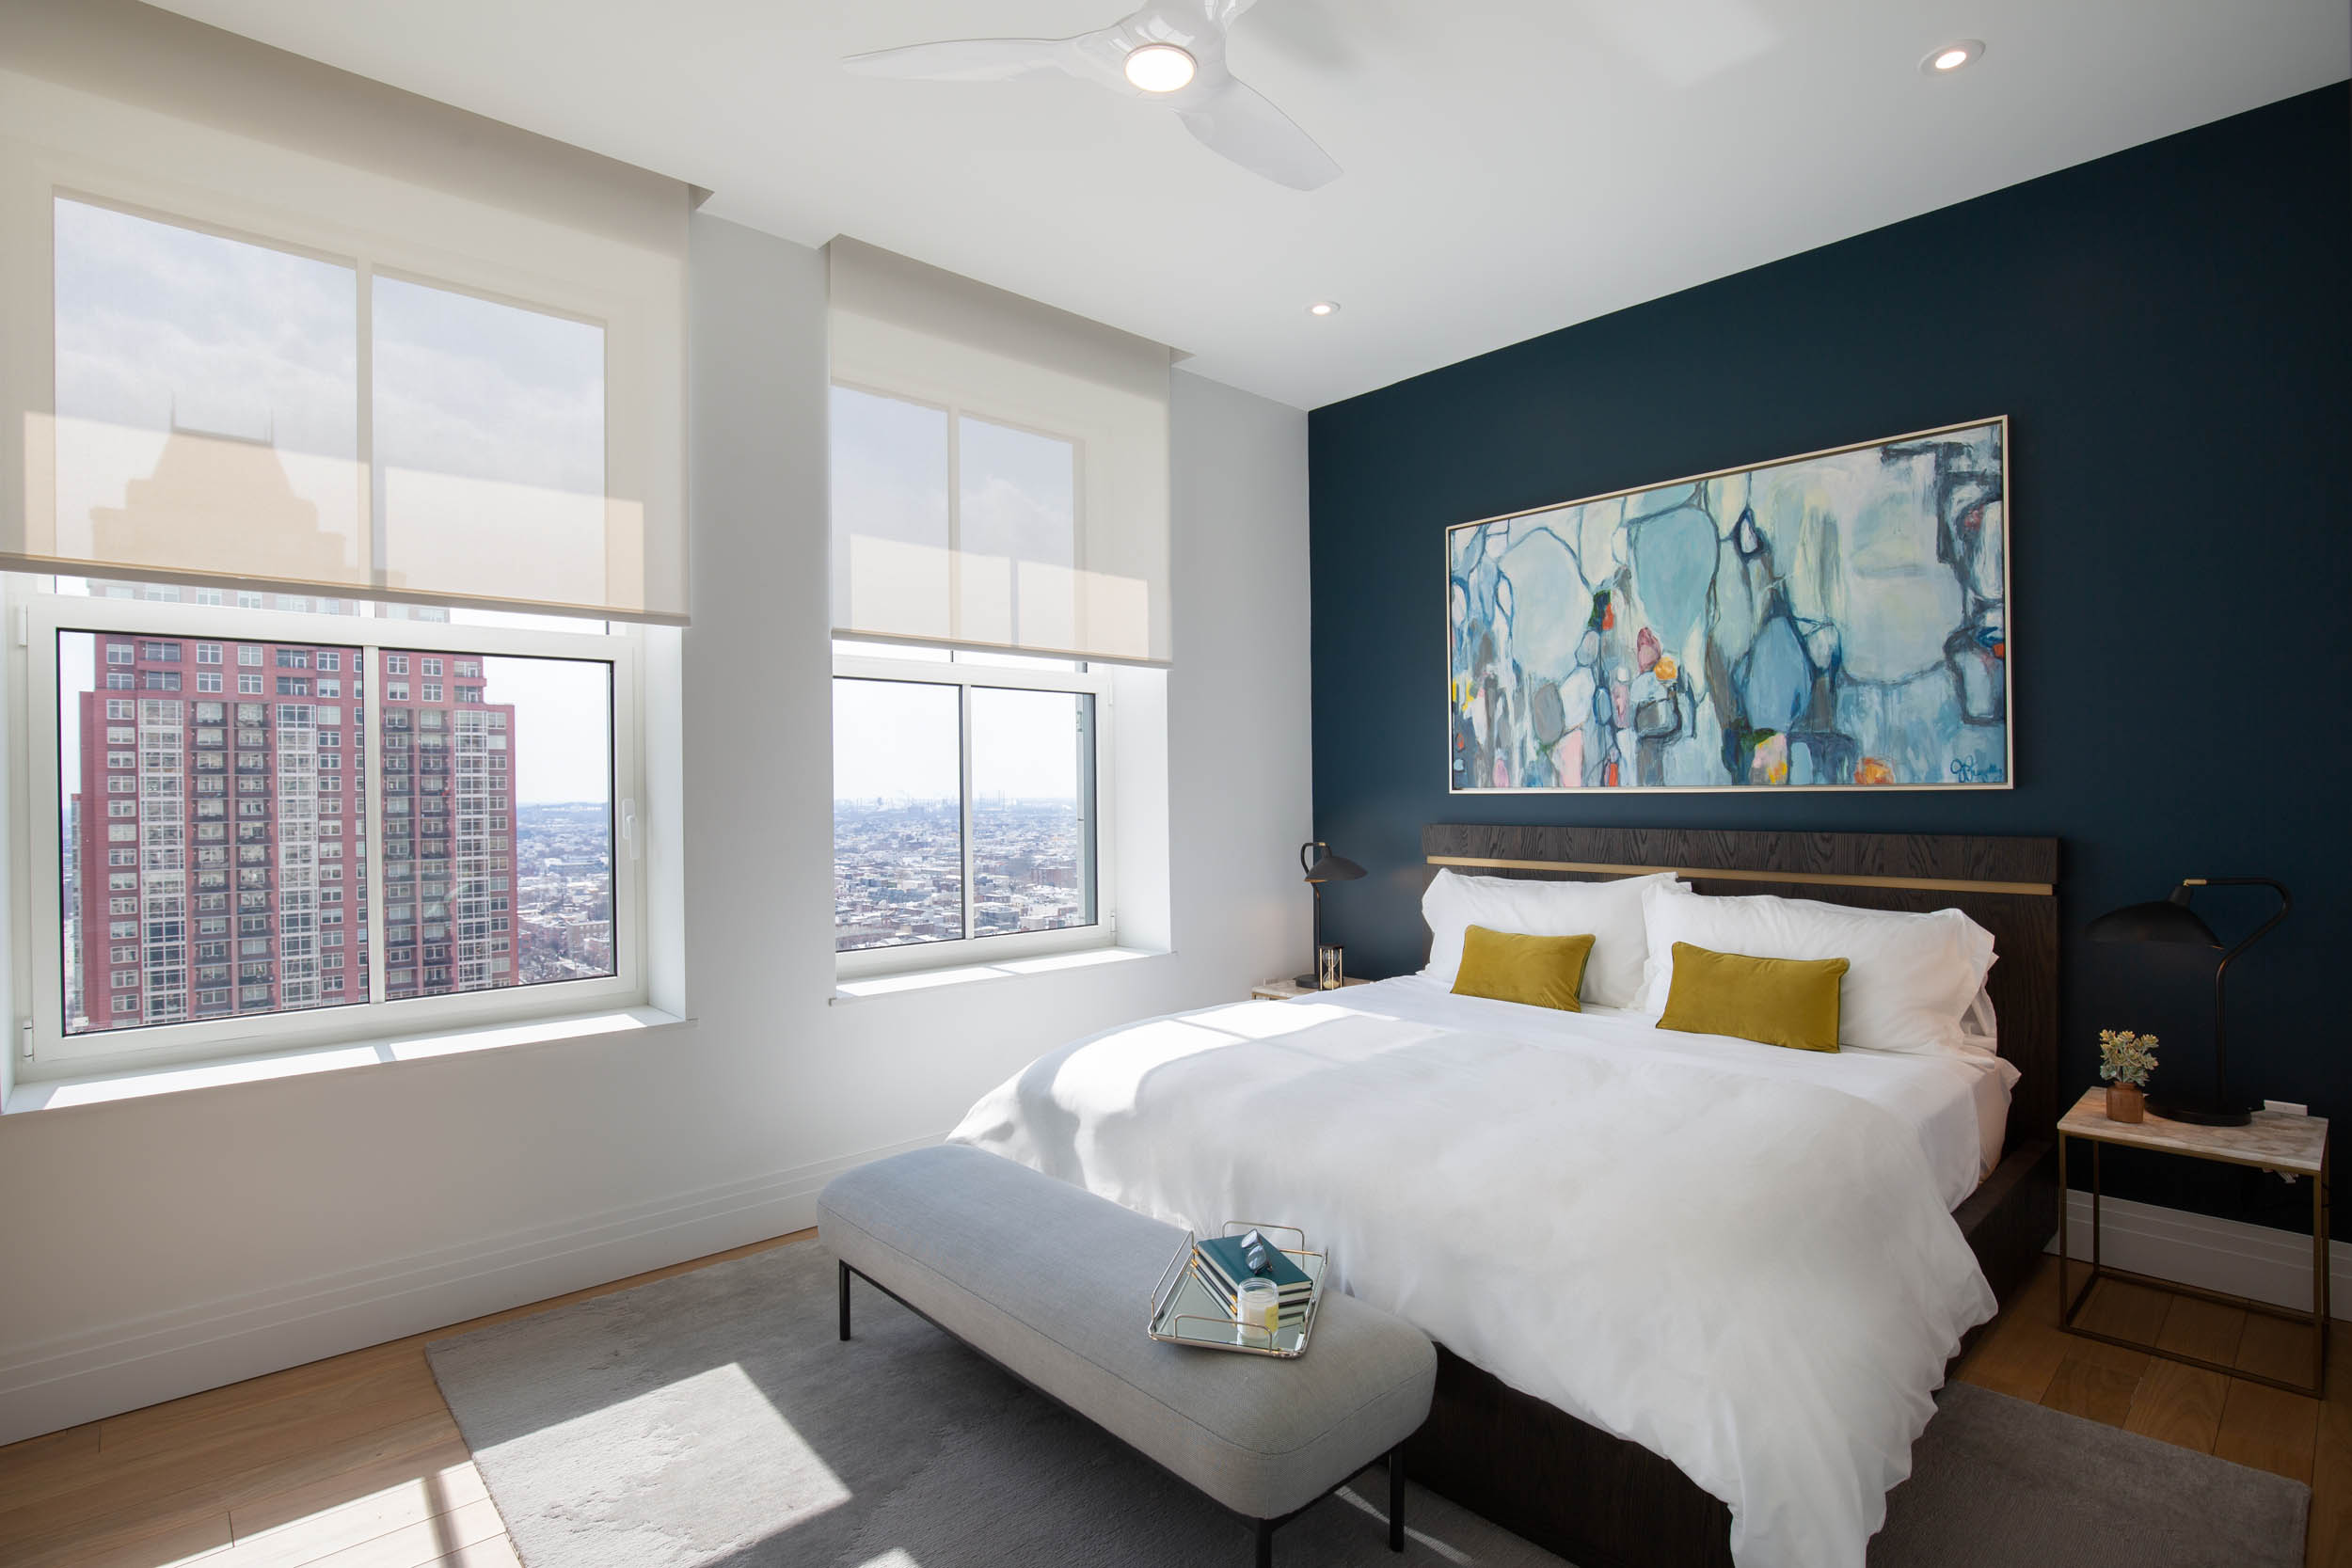 3BR A Bedroom View Modern